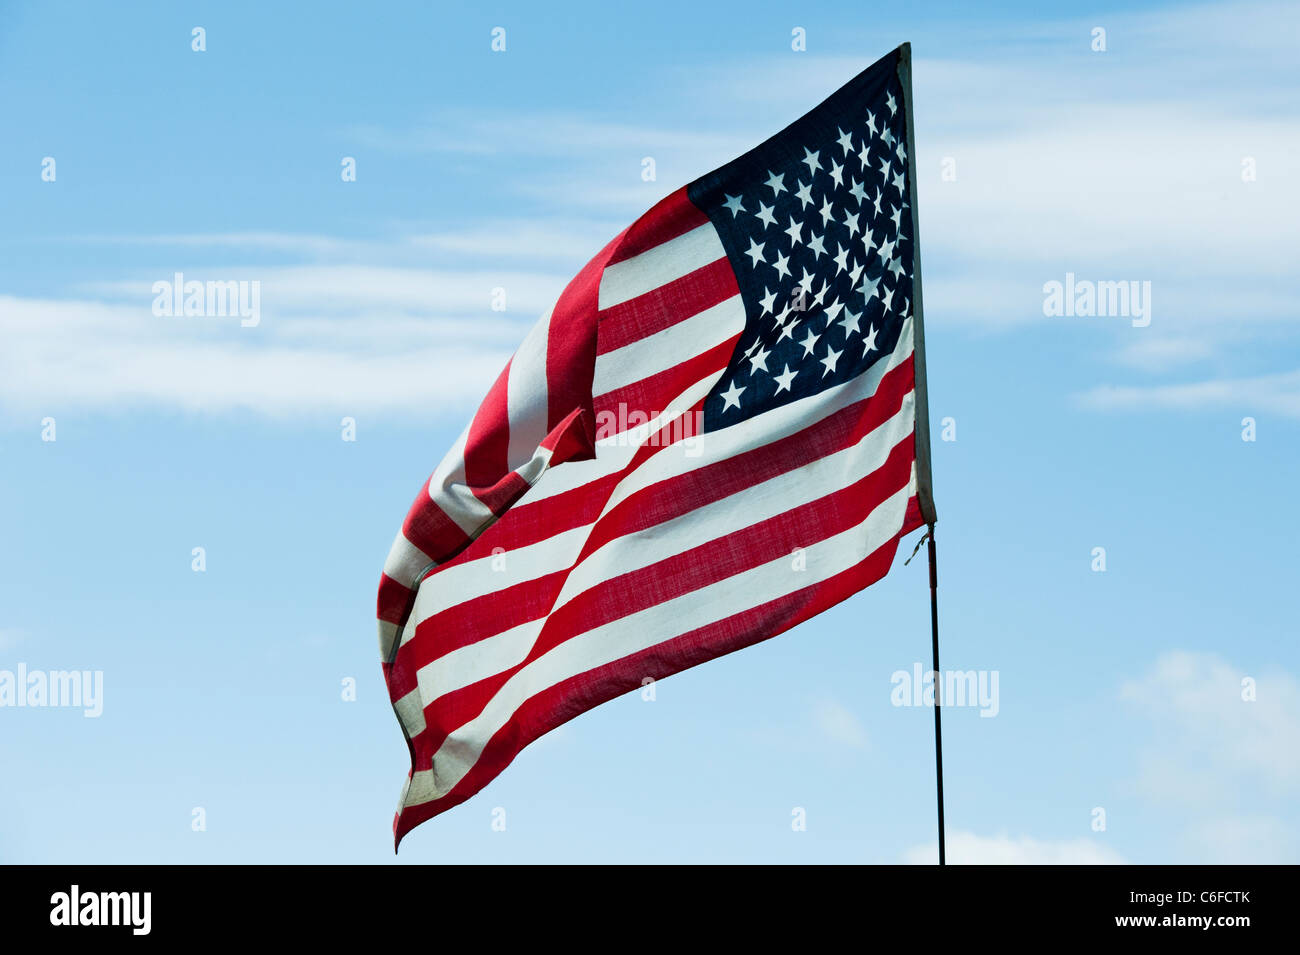 American flag on a flagpole blowing in the wind - Stock Image